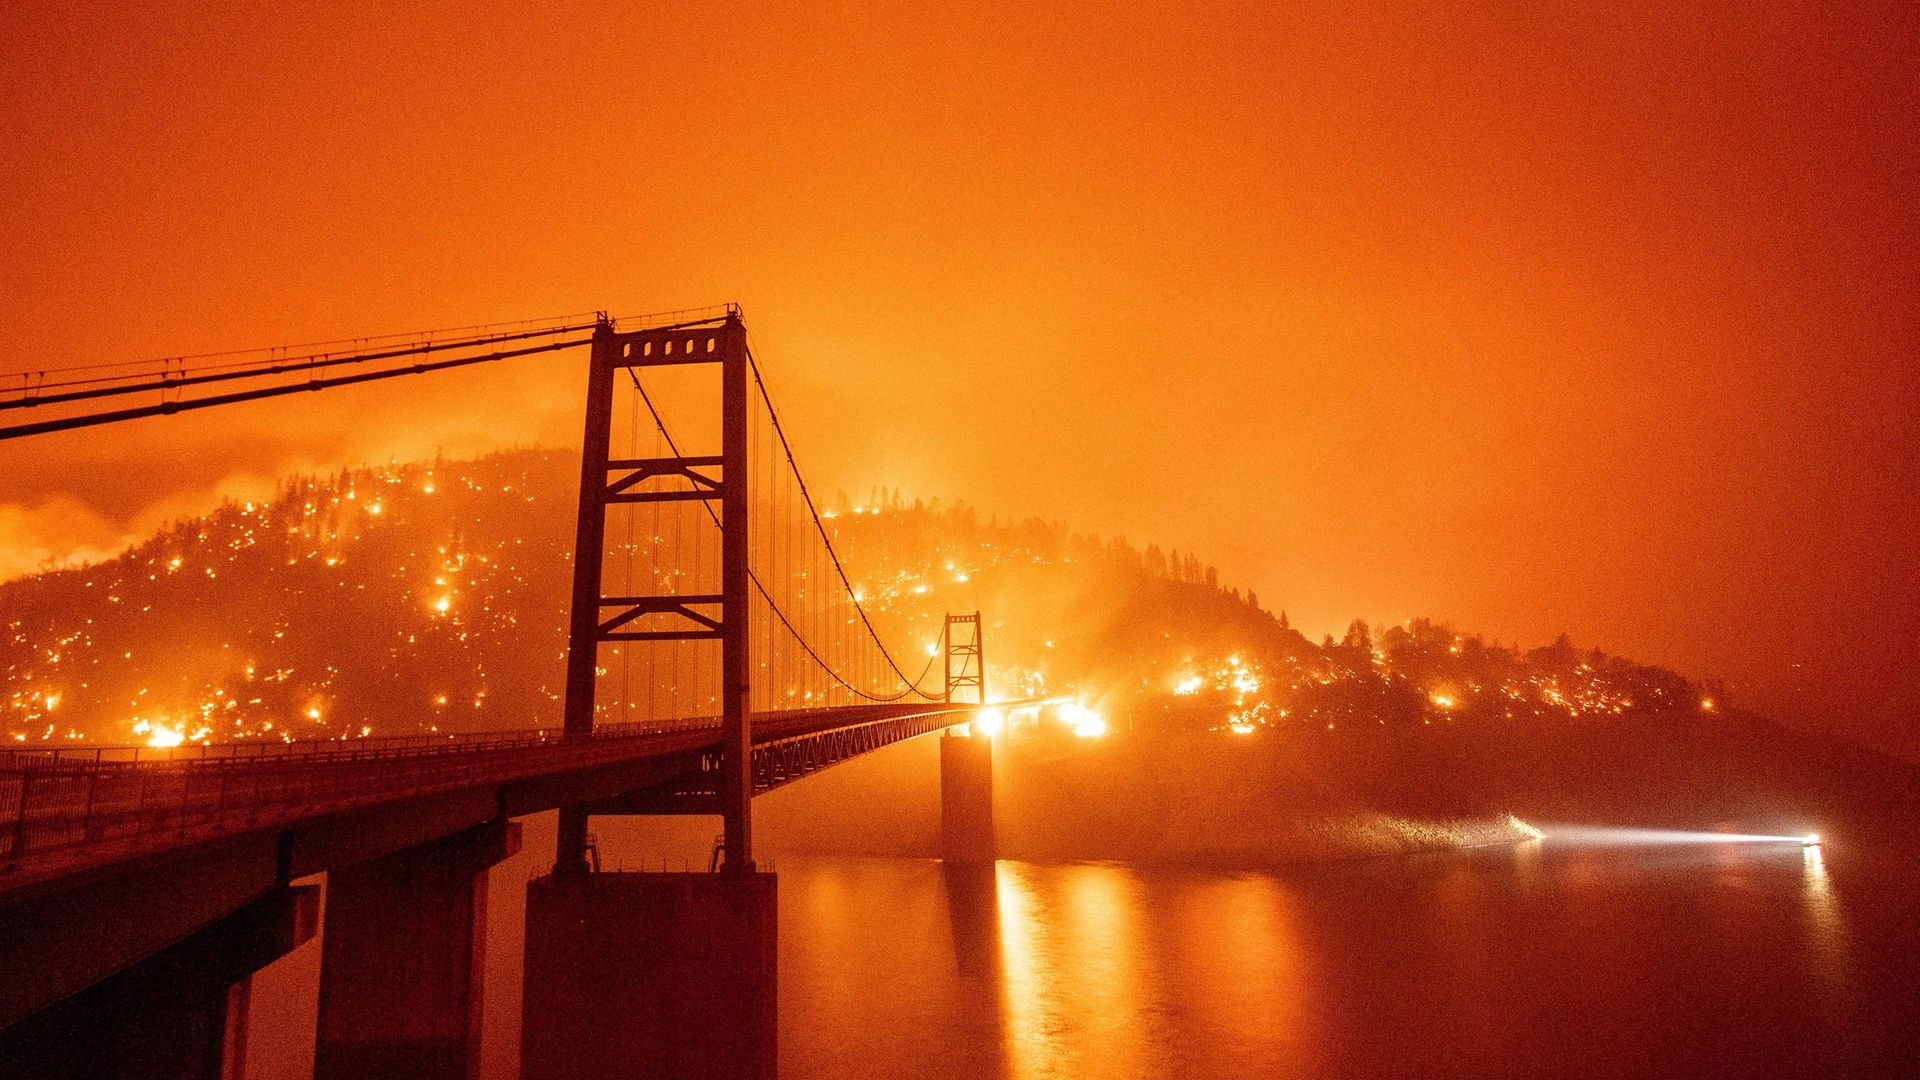 The Bidwell Bar Bridge over Lake Oroville, California, during forest fires in September 2020 - Credit: AFP via Getty Images